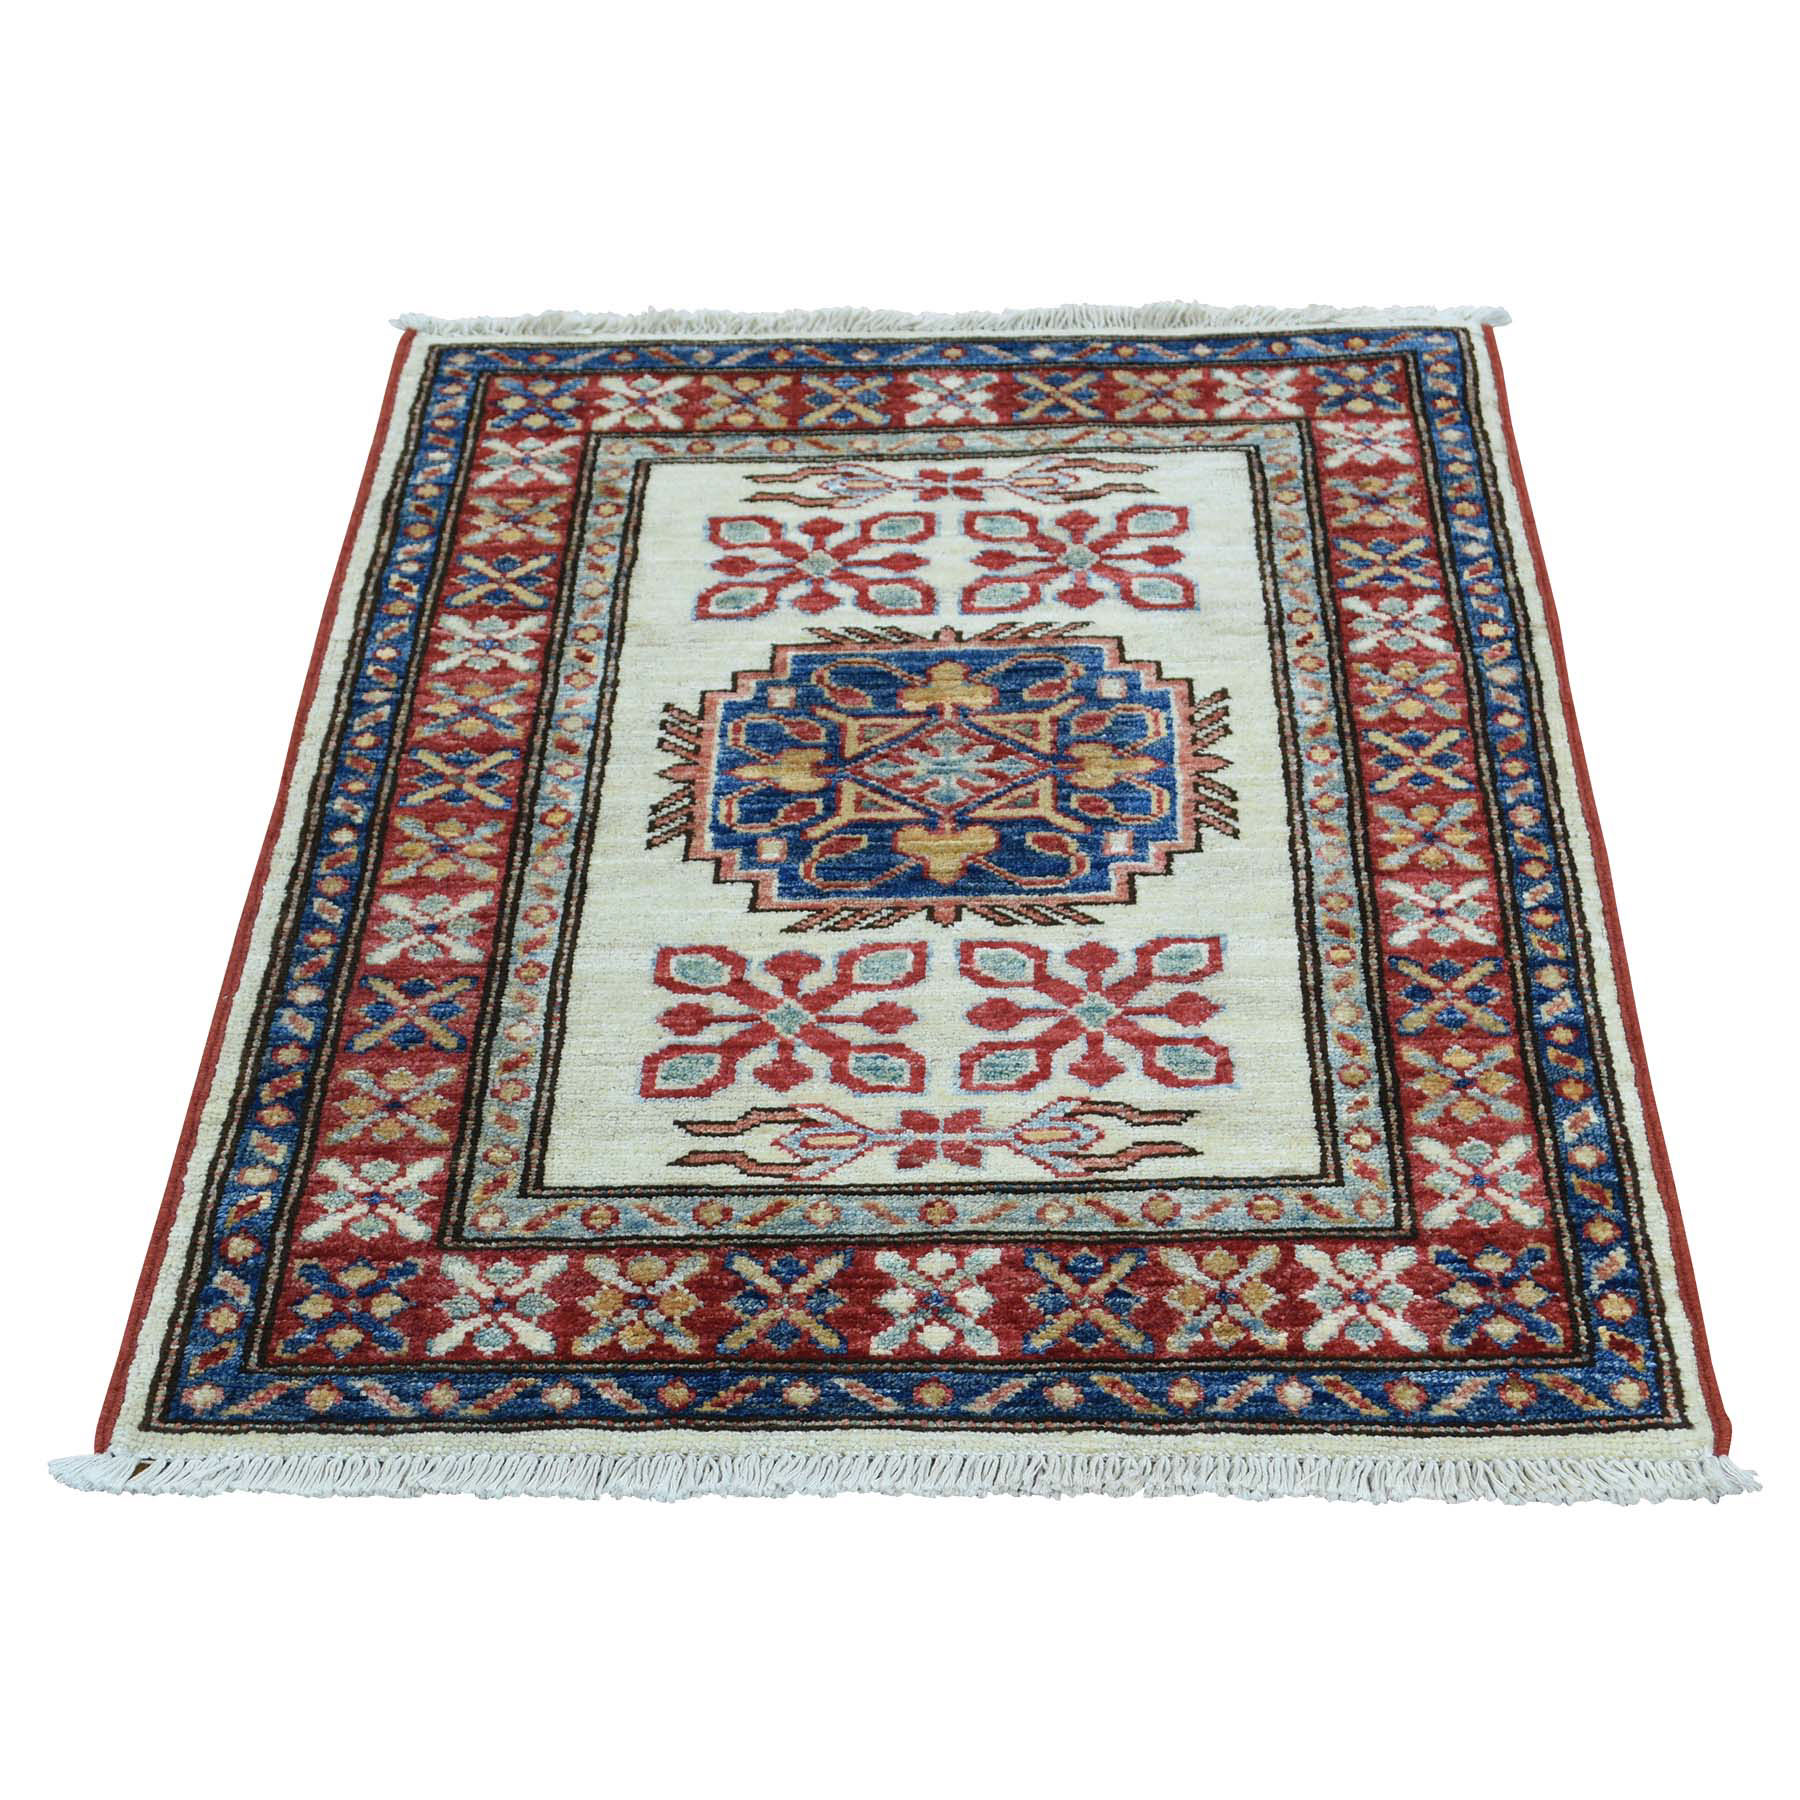 "2'1""X2'10"" Hand Knotted Tribal And Geometric Pure Wool Super Kazak Rug moac6be0"